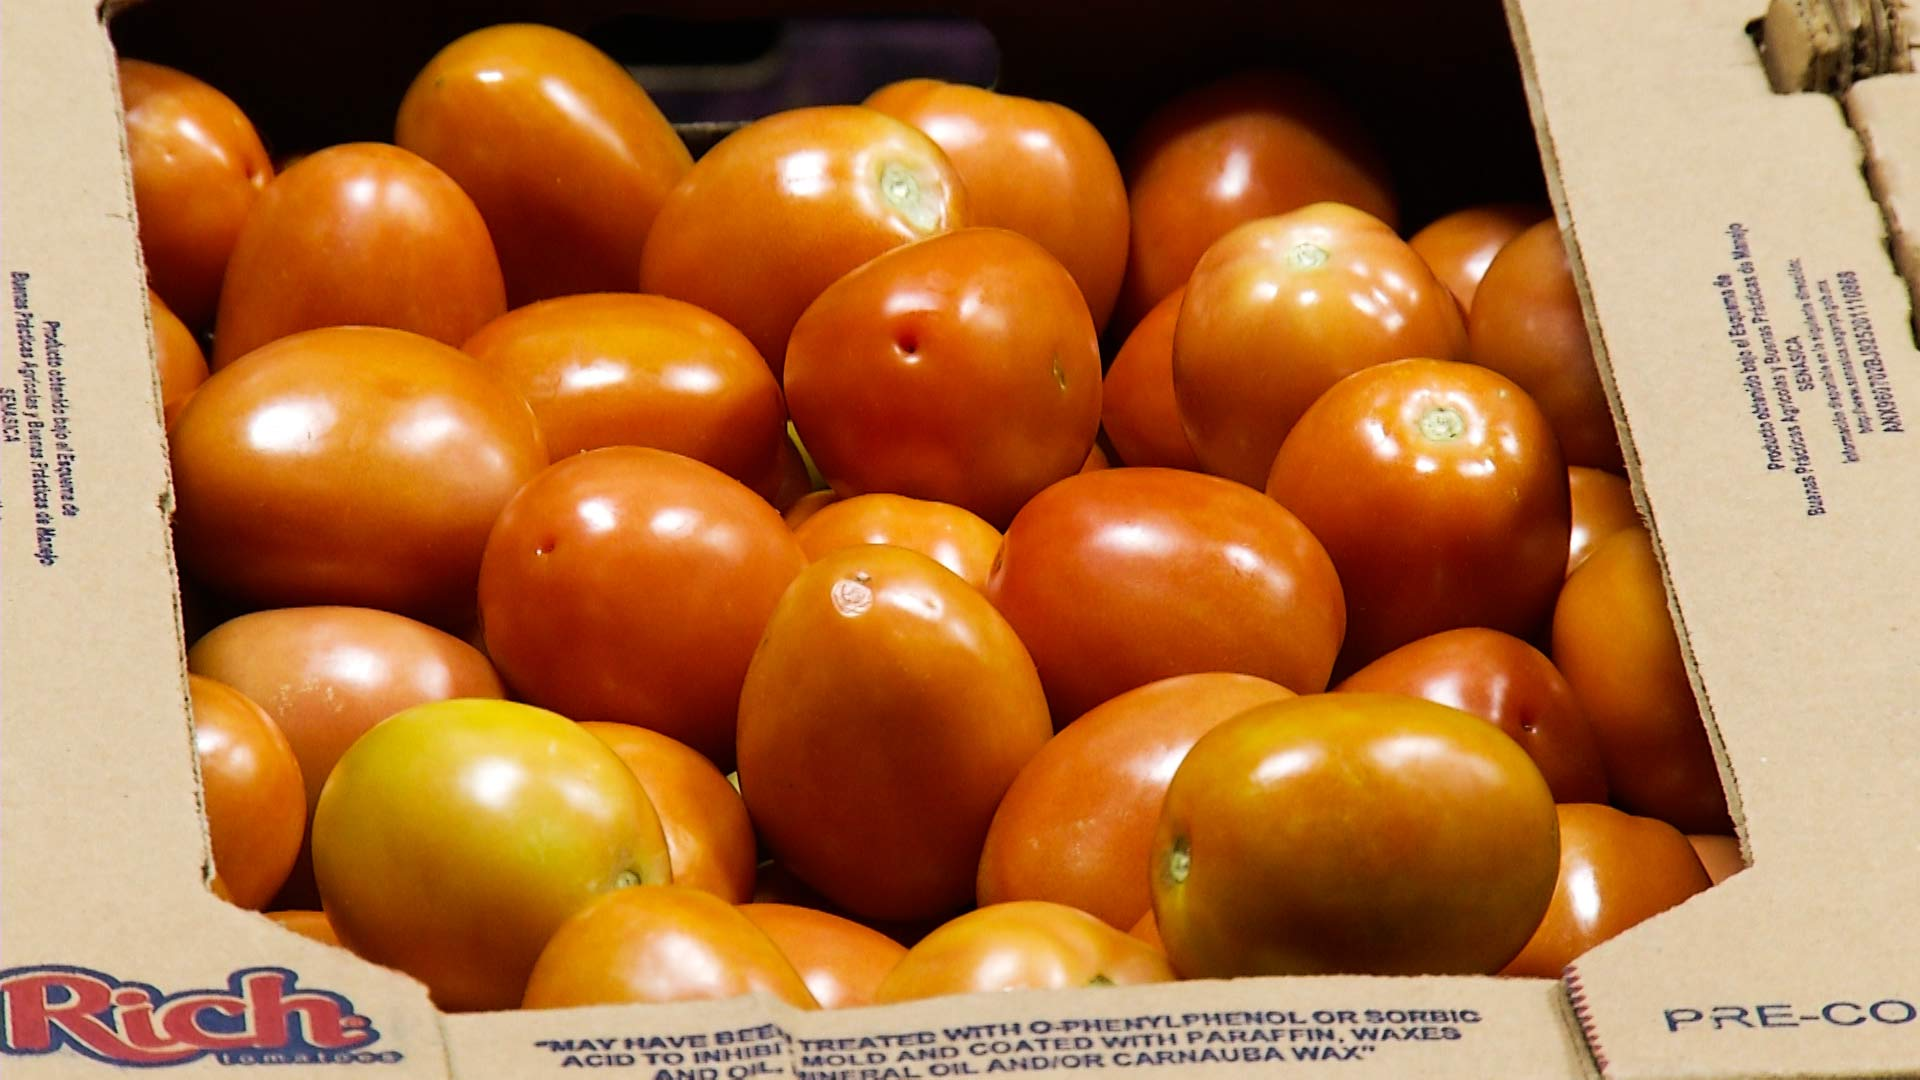 Tomatoes on their way north across the U.S.-Mexico border.